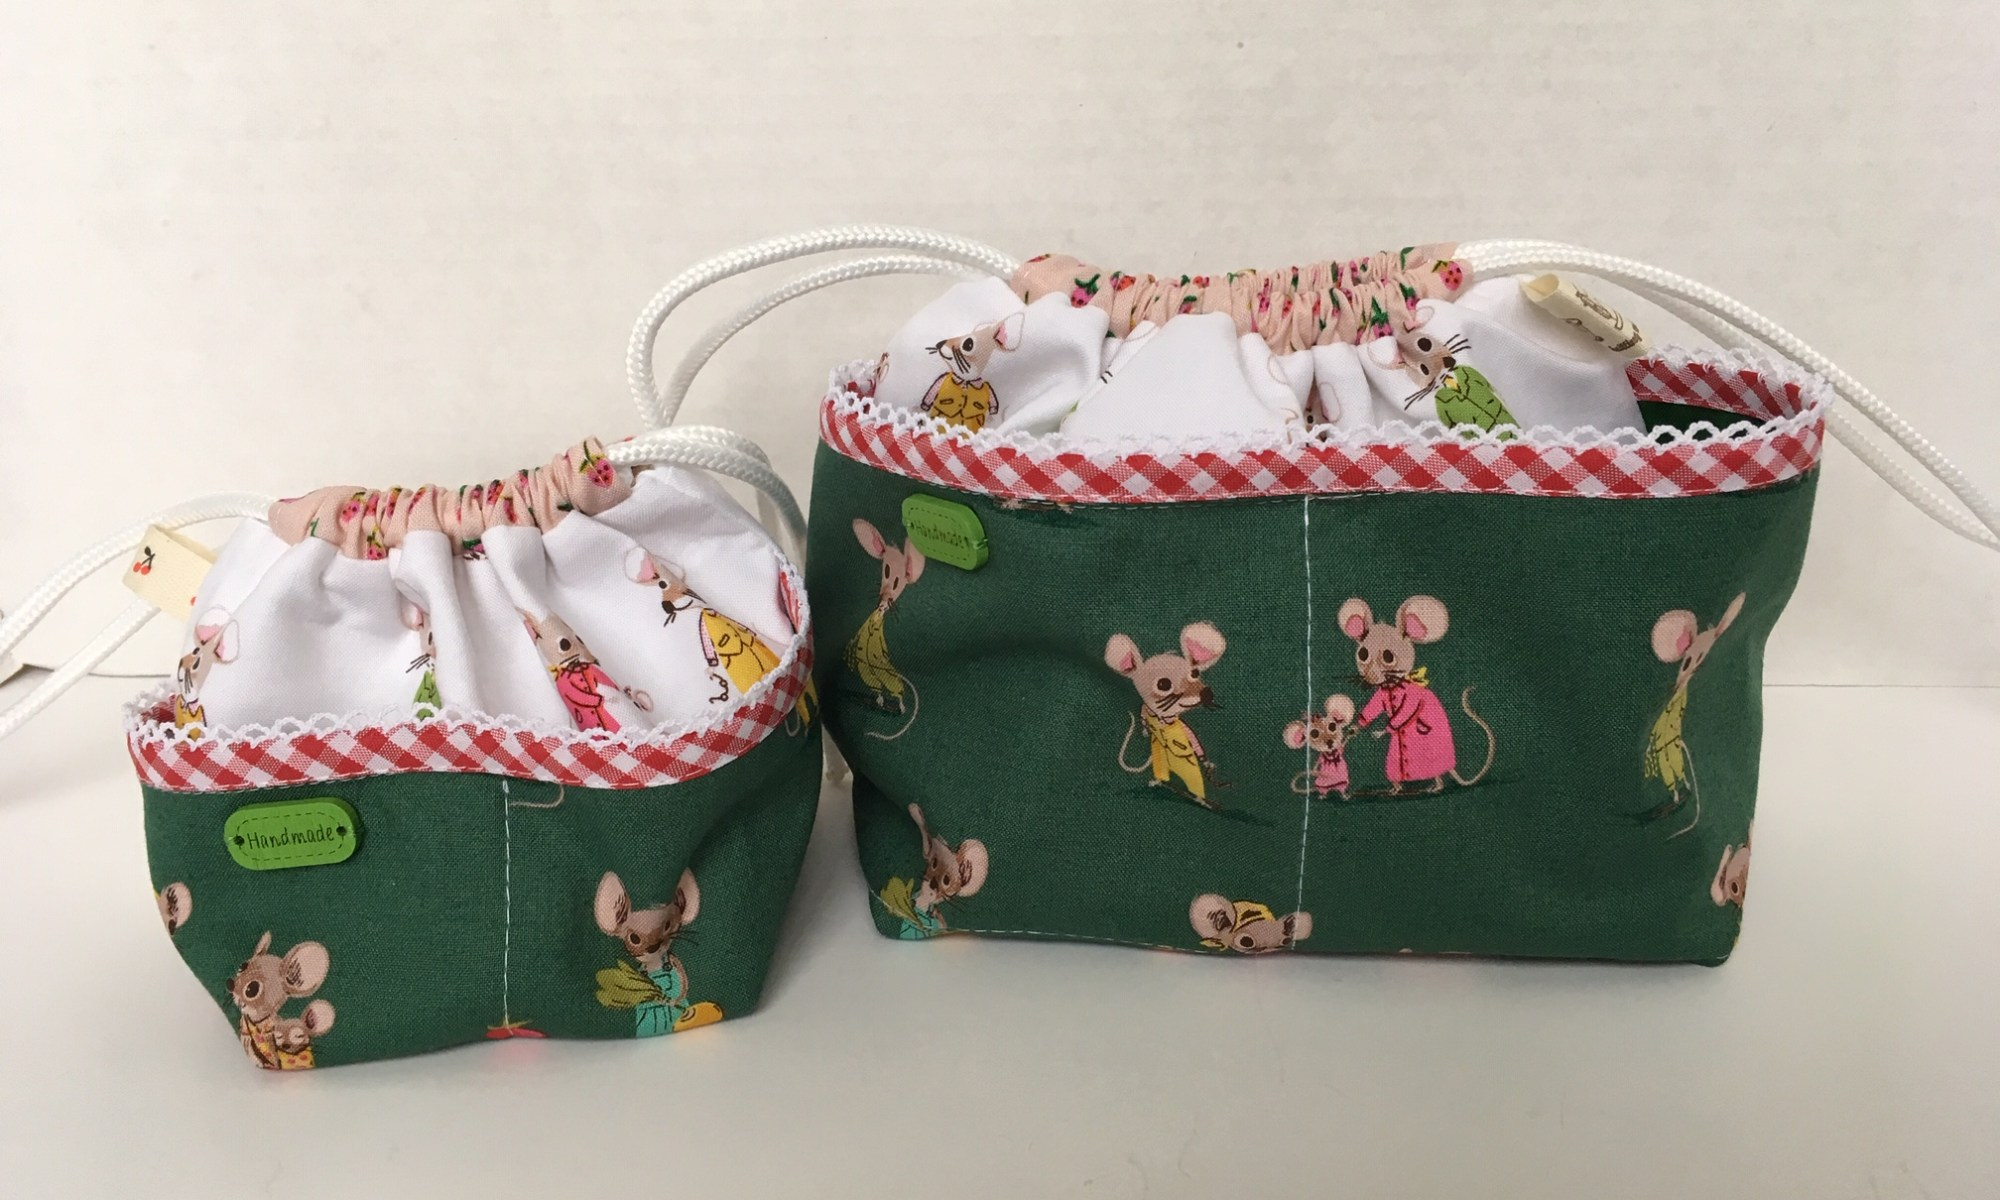 Weebraw bags made by Daydreams of Quilts